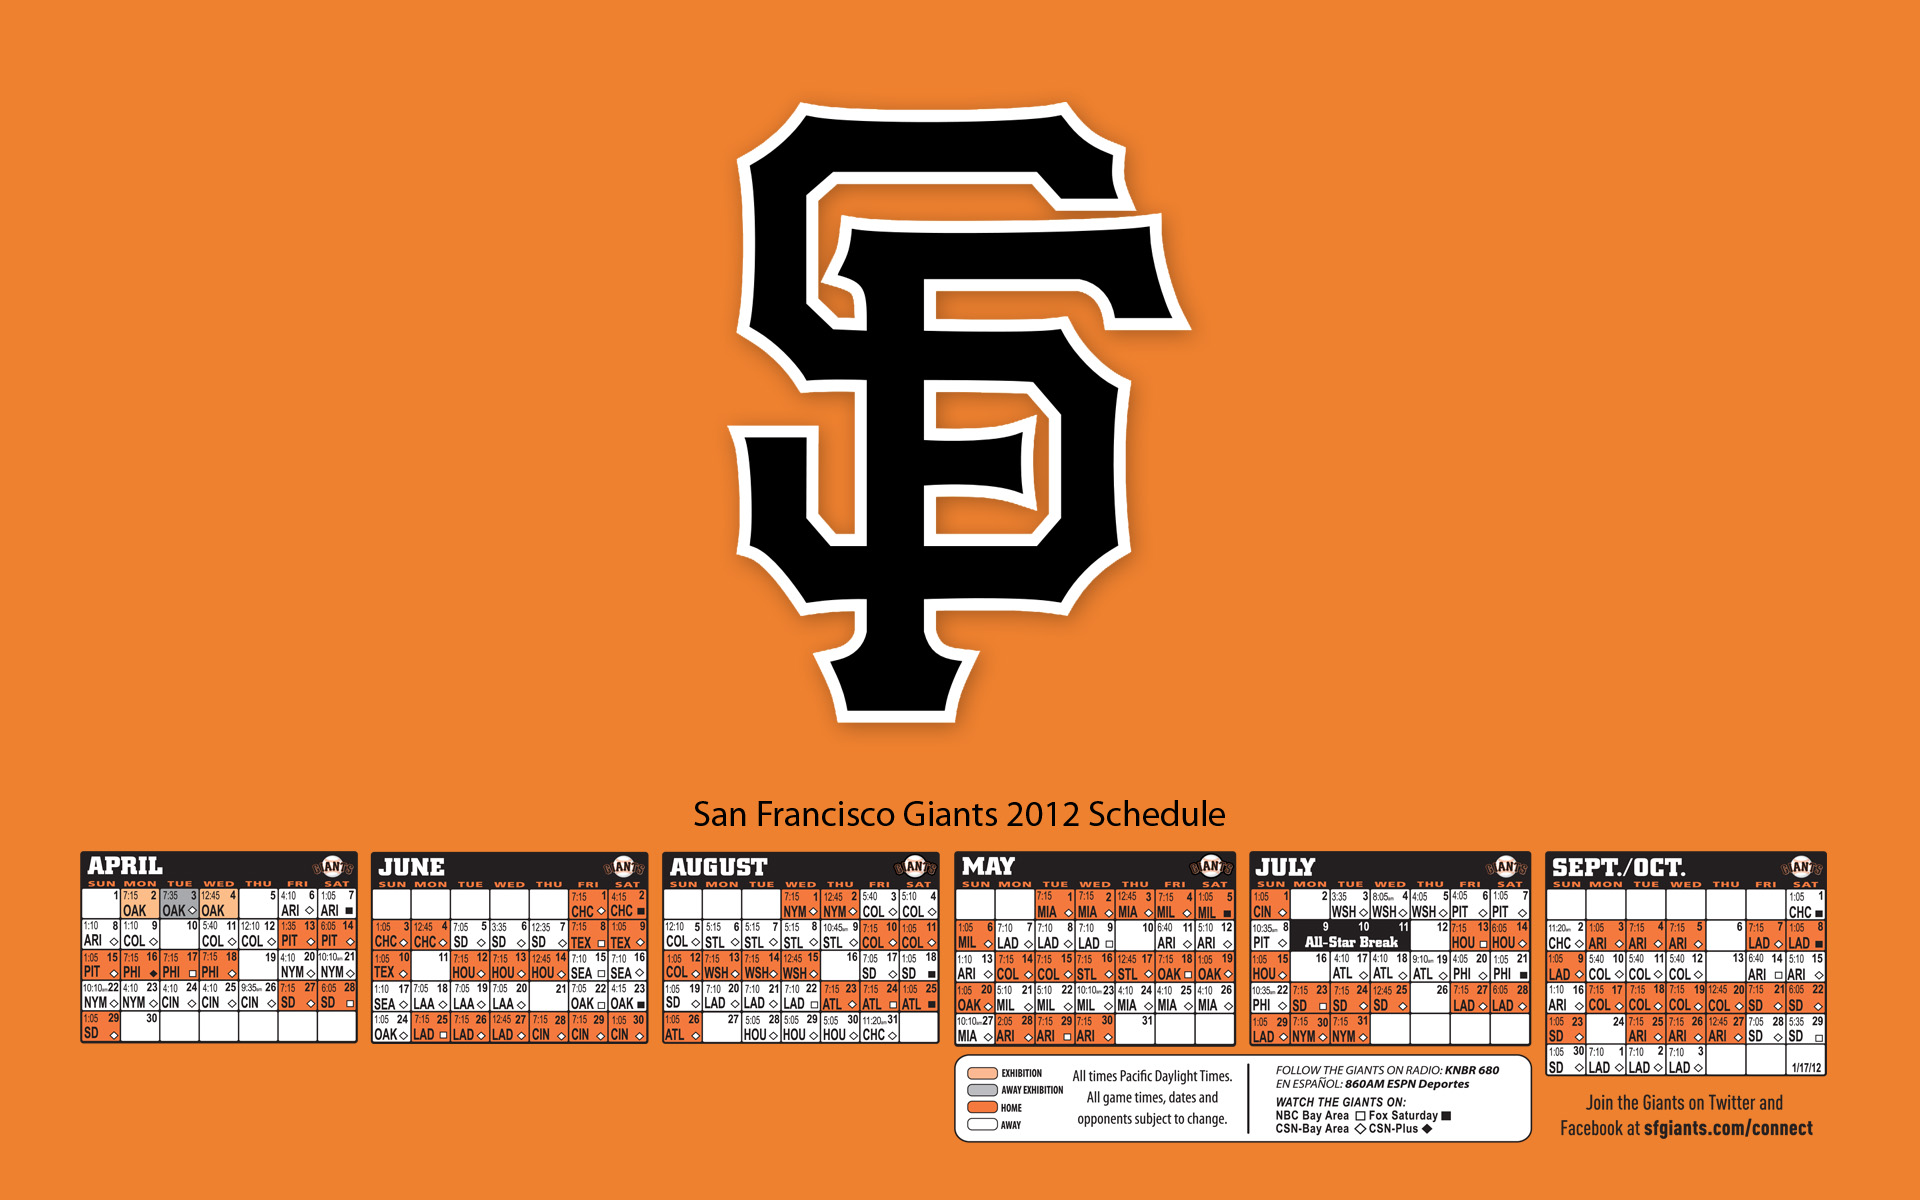 san francisco giants schedule 2012 San 1920x1200